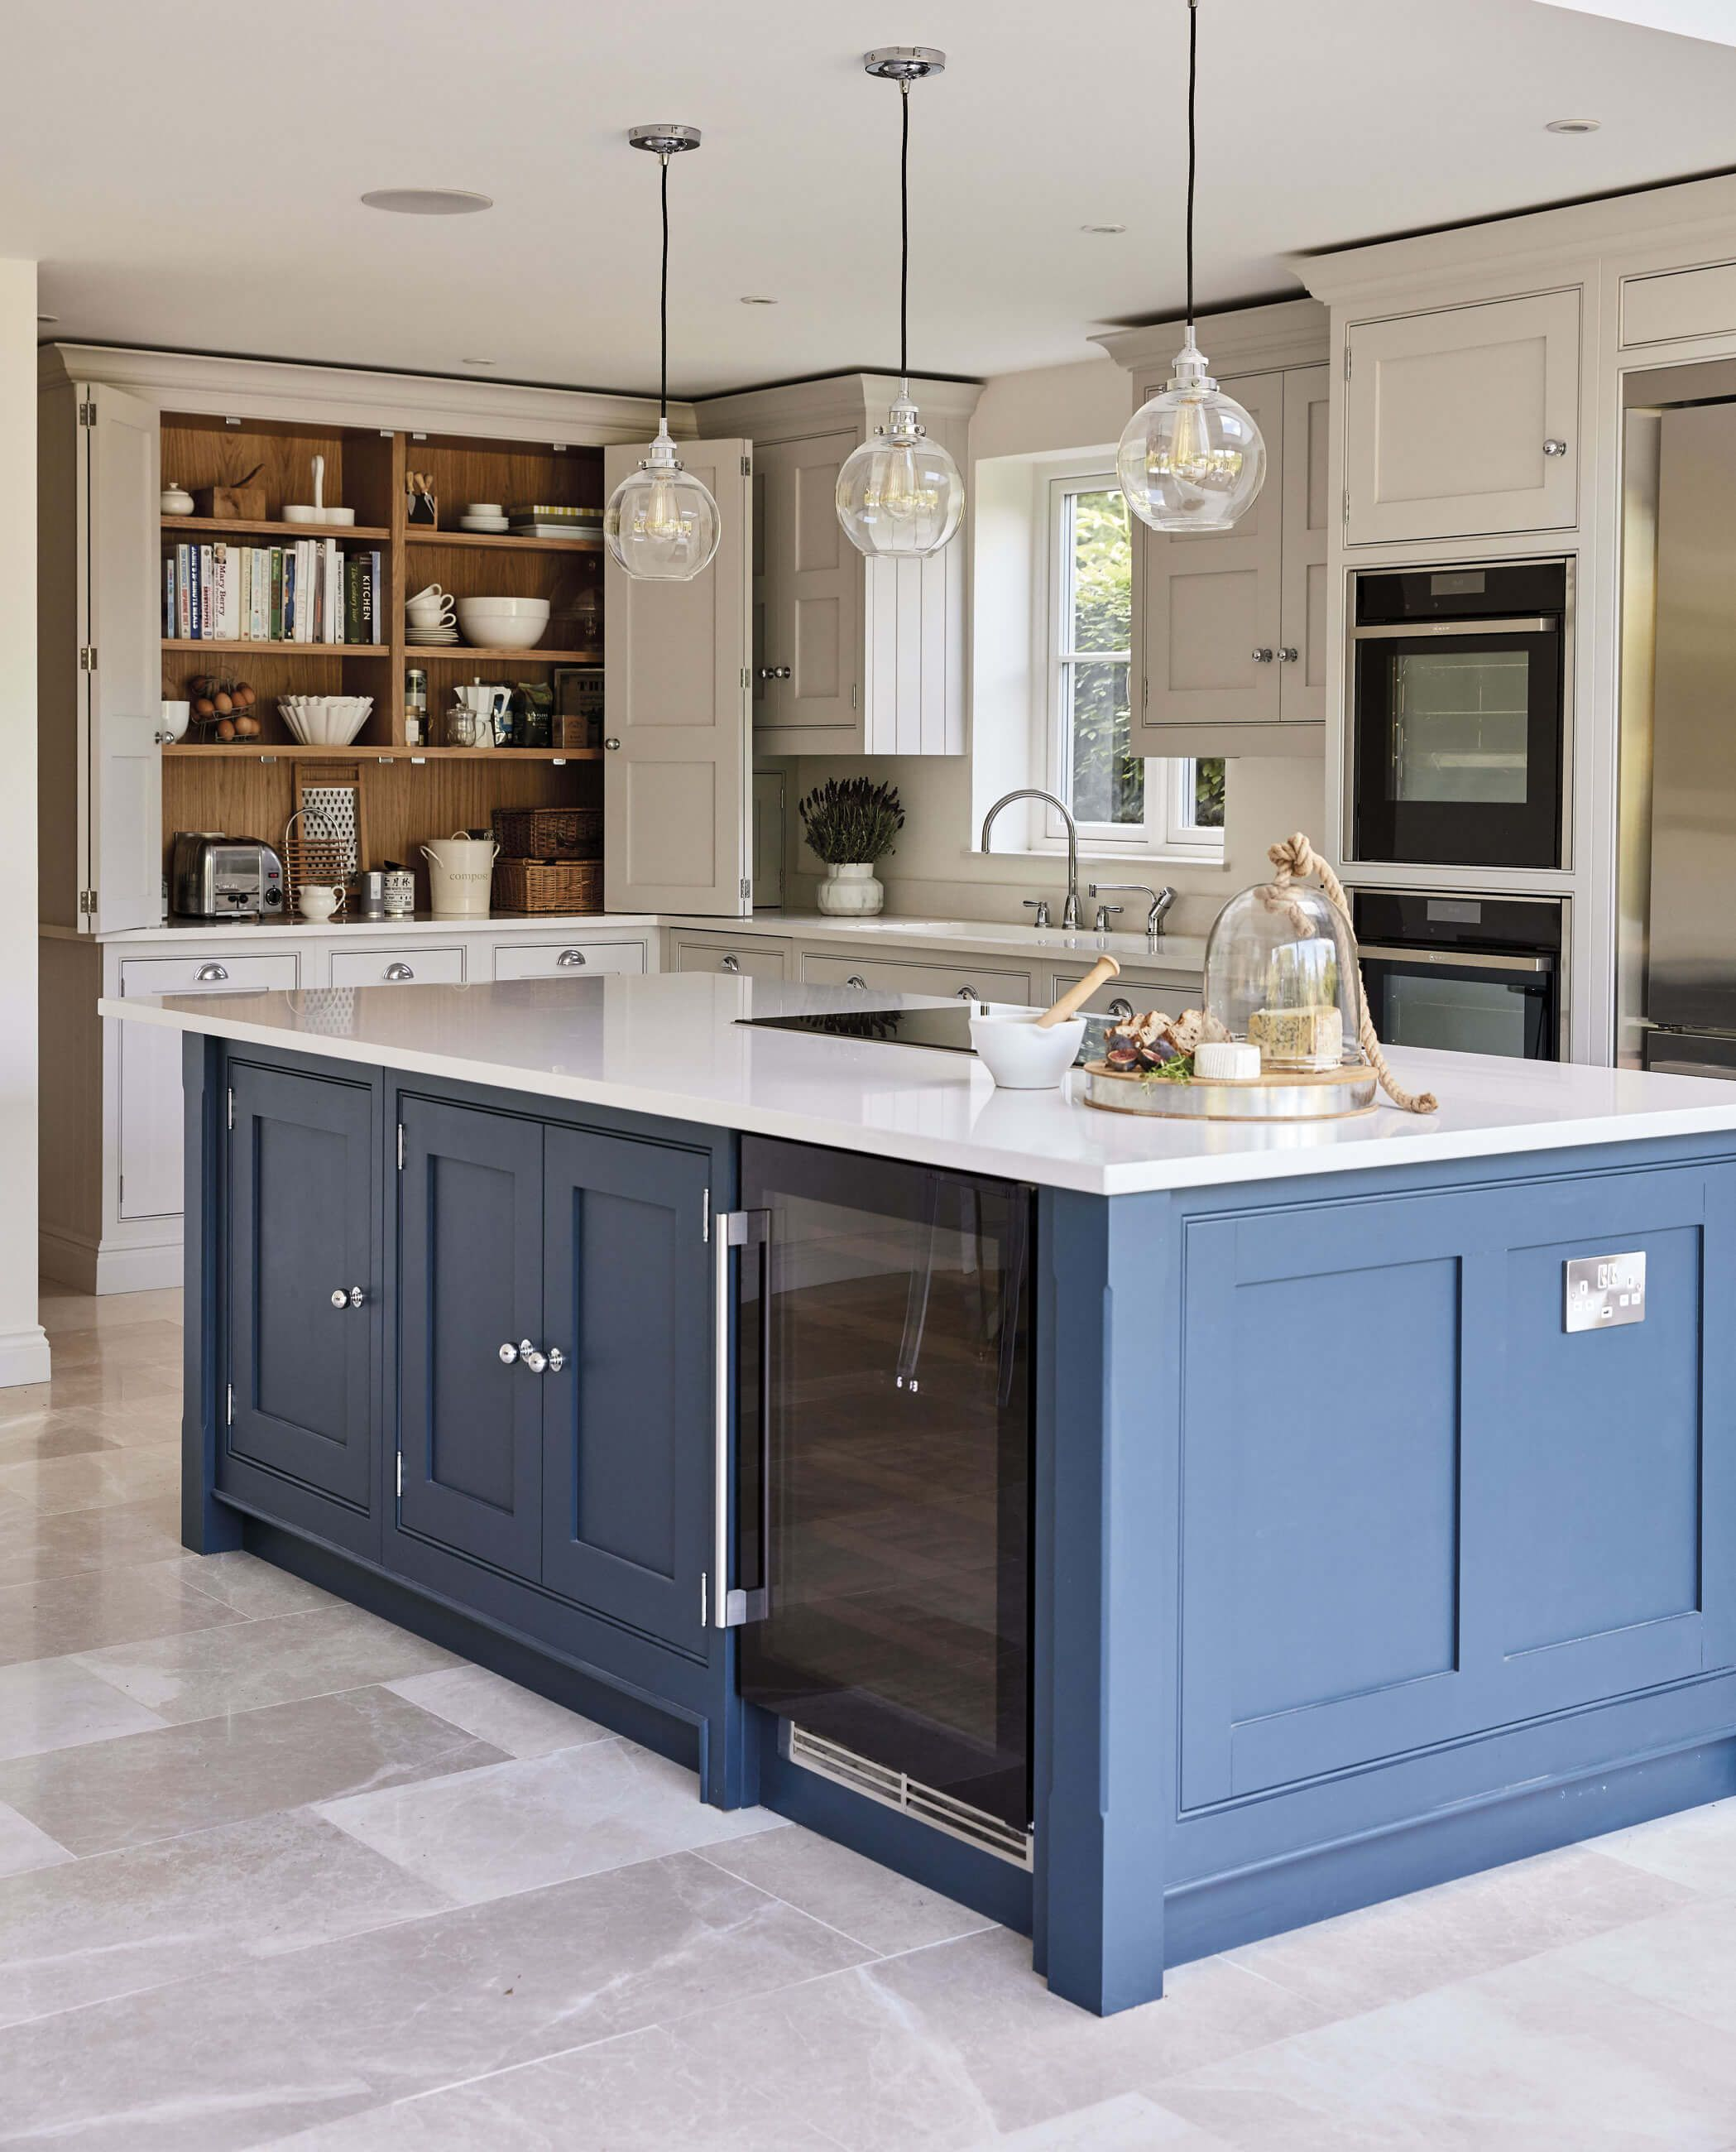 This Blue Shaker Kitchen Has Been Designed With Family In Mind, Full Of  State Of The Art Appliances And Hidden Storage Solutions.